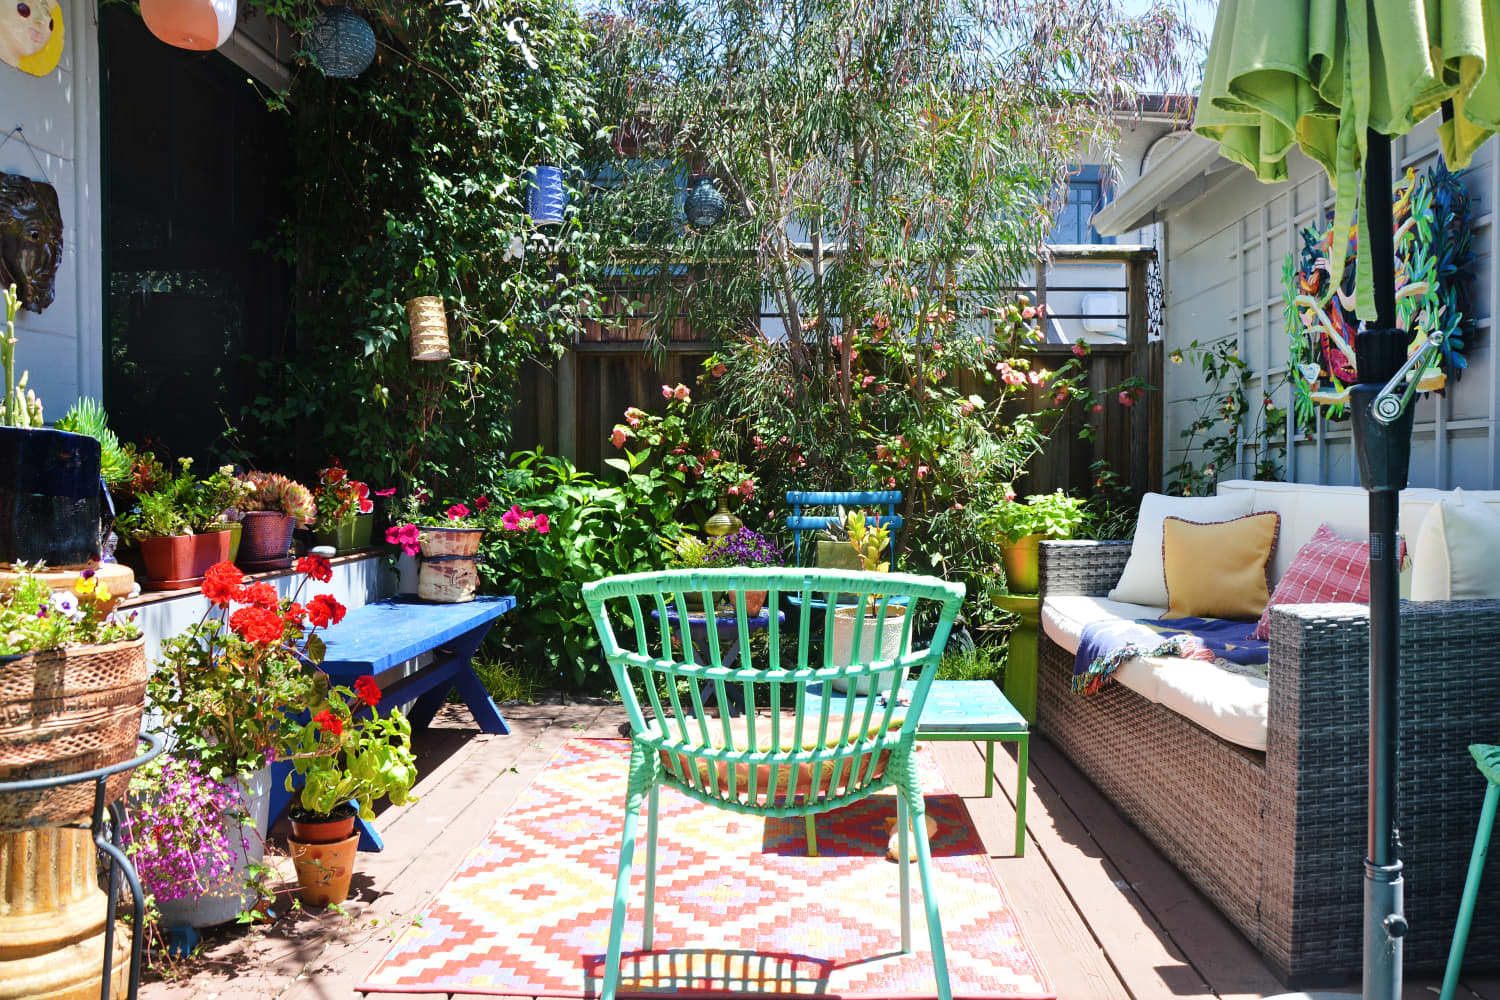 The Best Paint Colors for Outdoor Furniture, According to Real Estate Agents